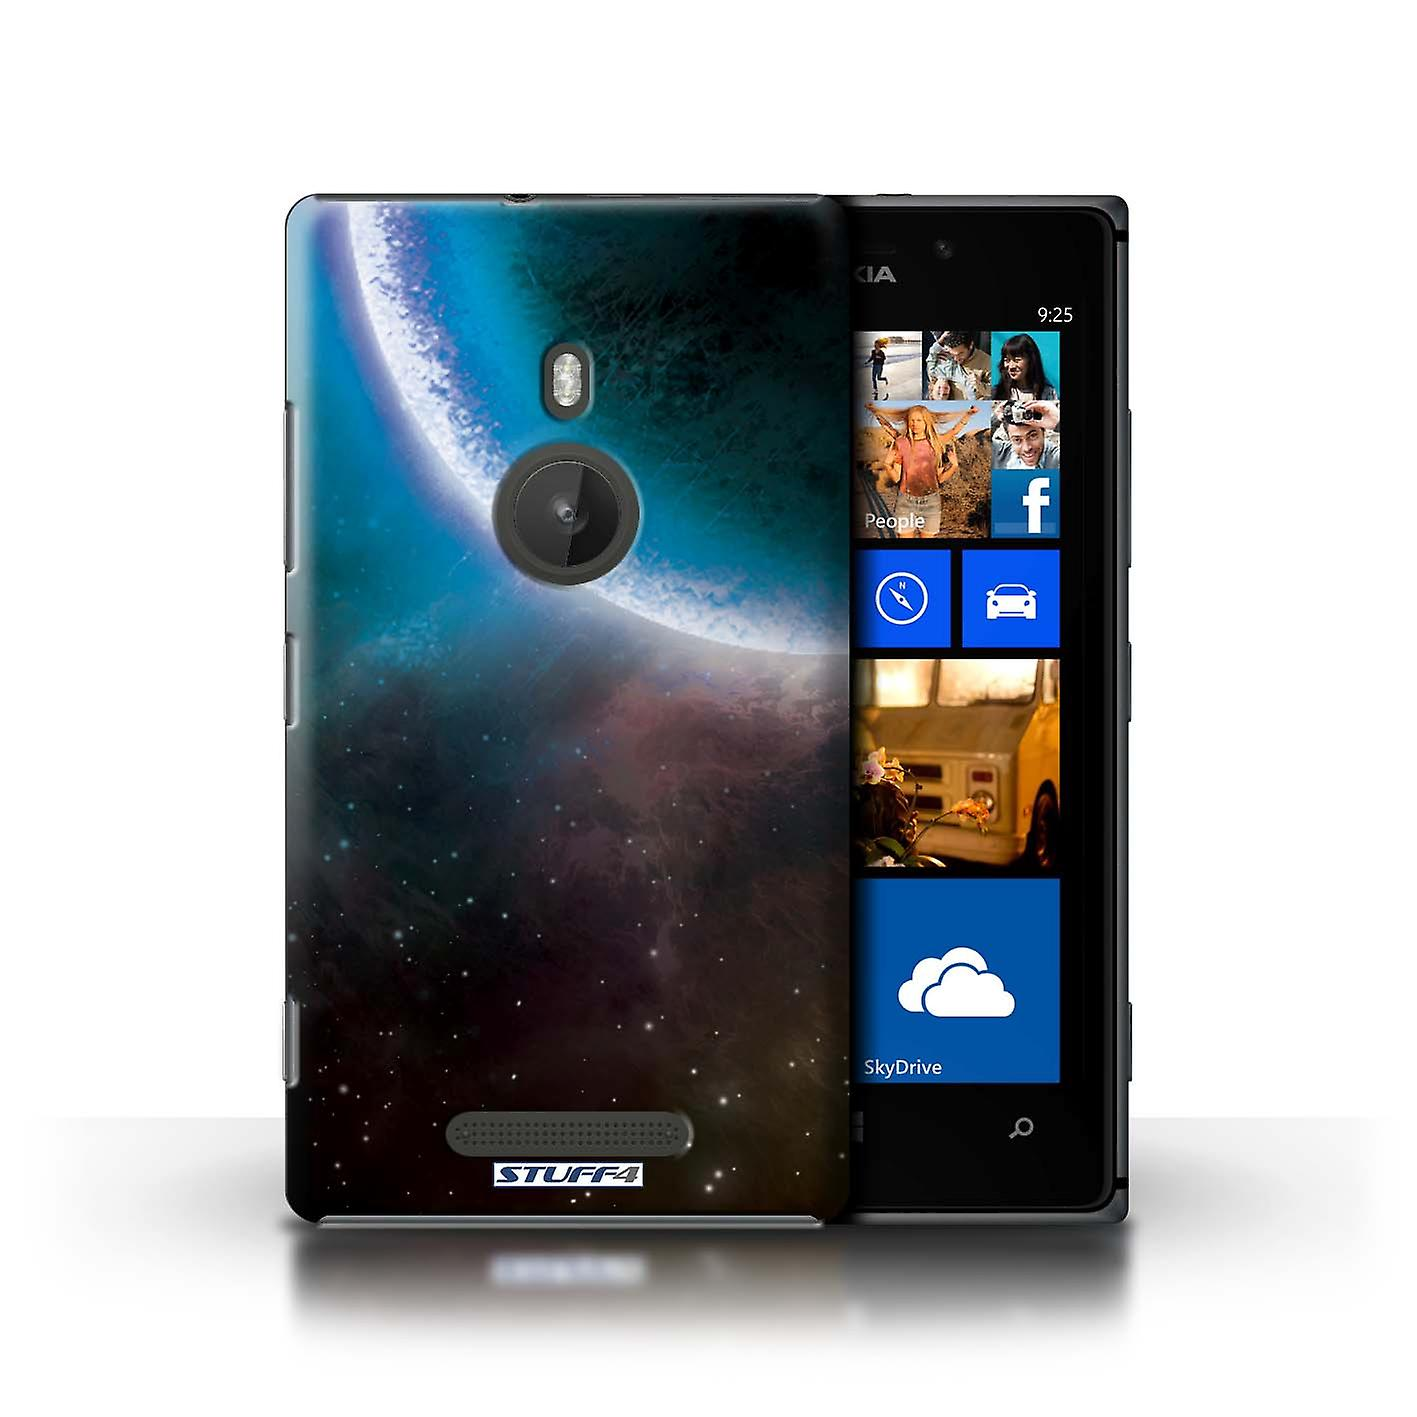 STUFF4 Case/Cover for Nokia Lumia 925/Blue Eclipse/Space/Cosmos